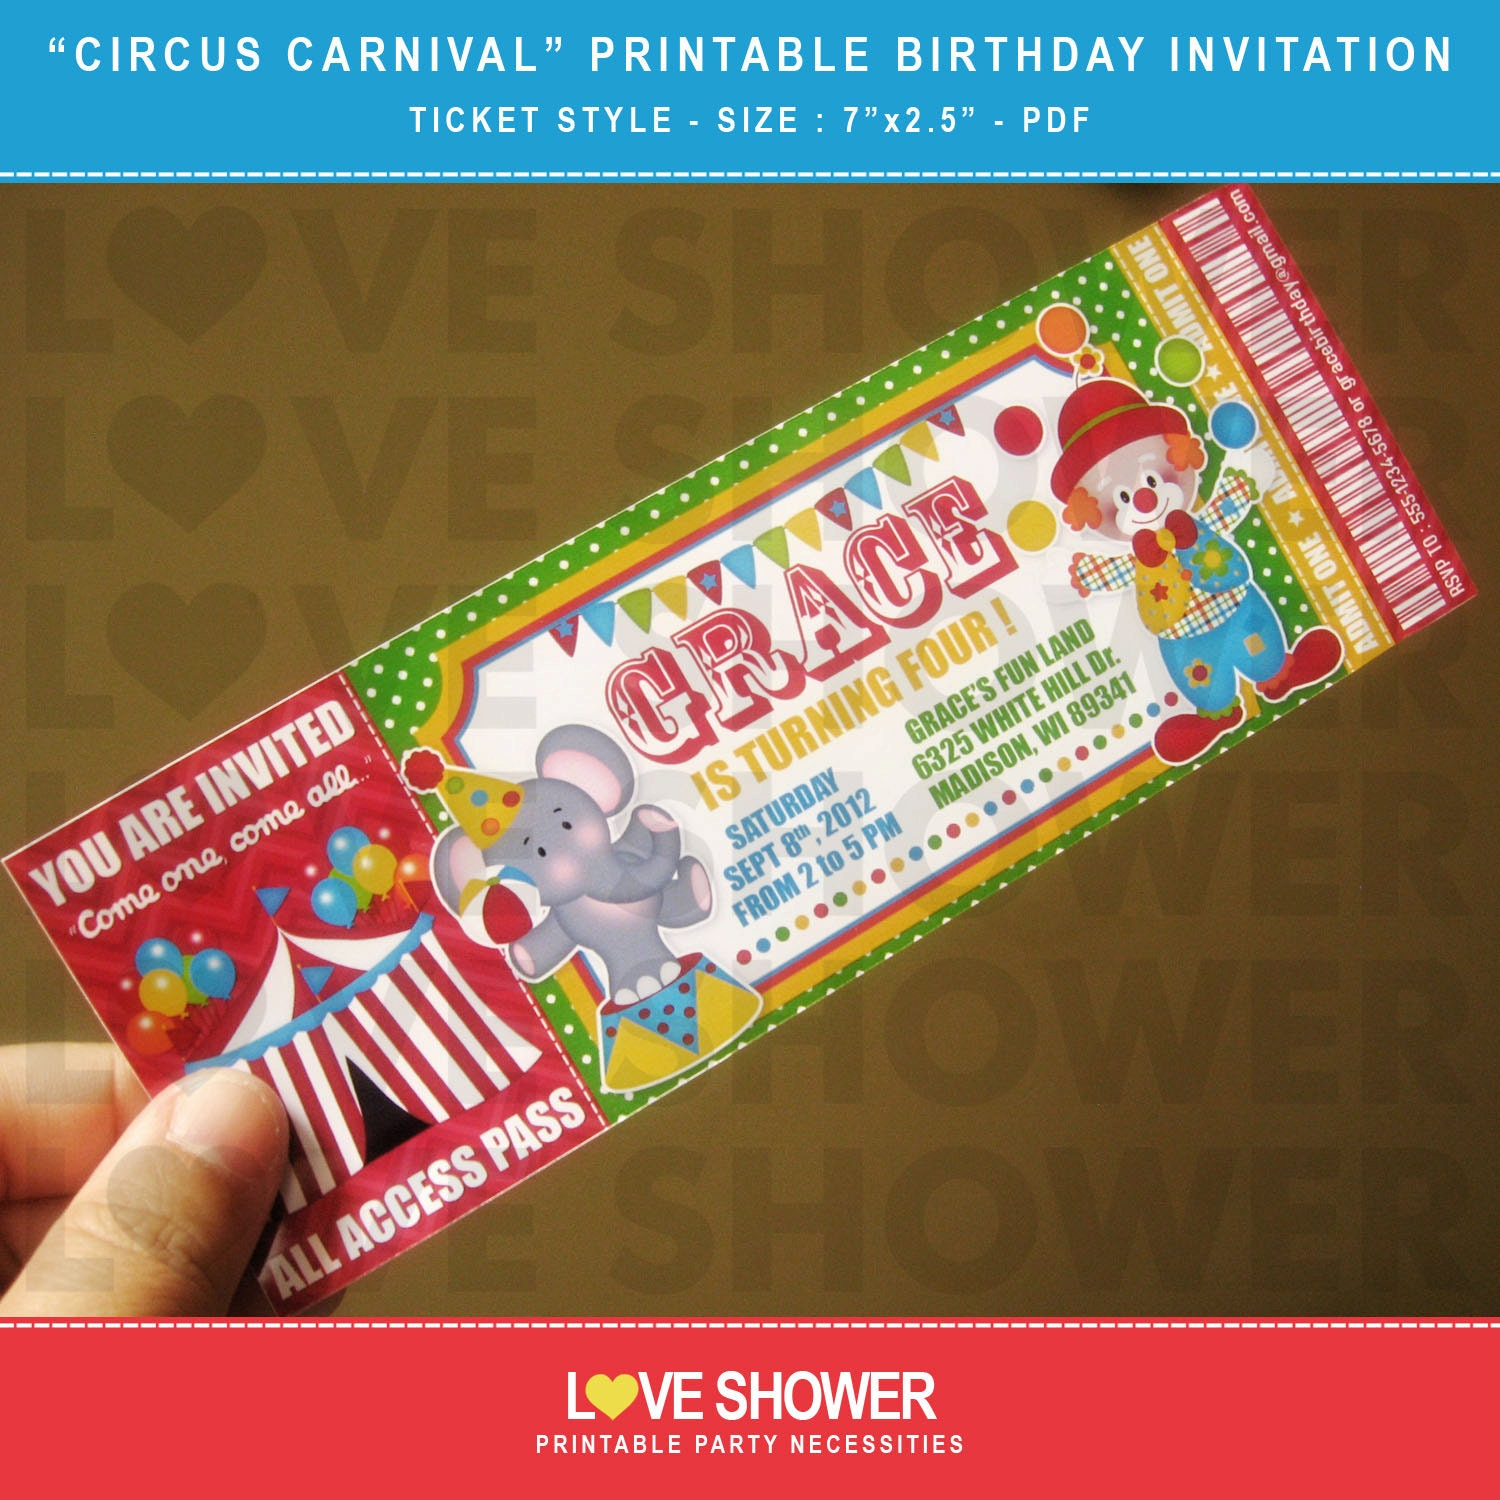 Carnival Theme Invitation was awesome invitations example